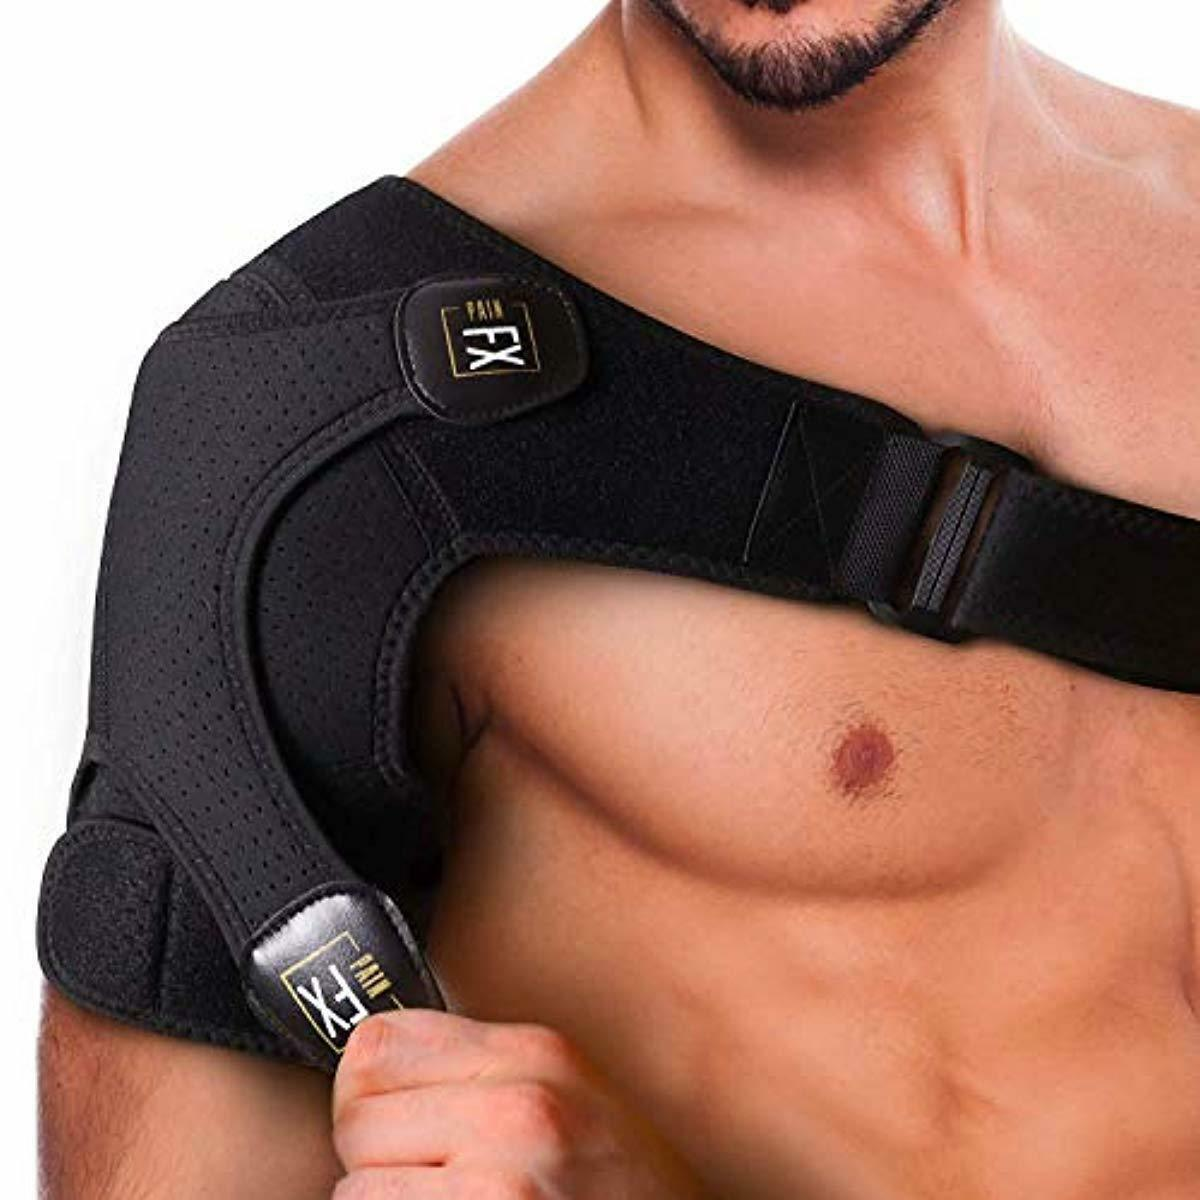 PainFX Shoulder Brace for Men with Rotator Cuff Support and